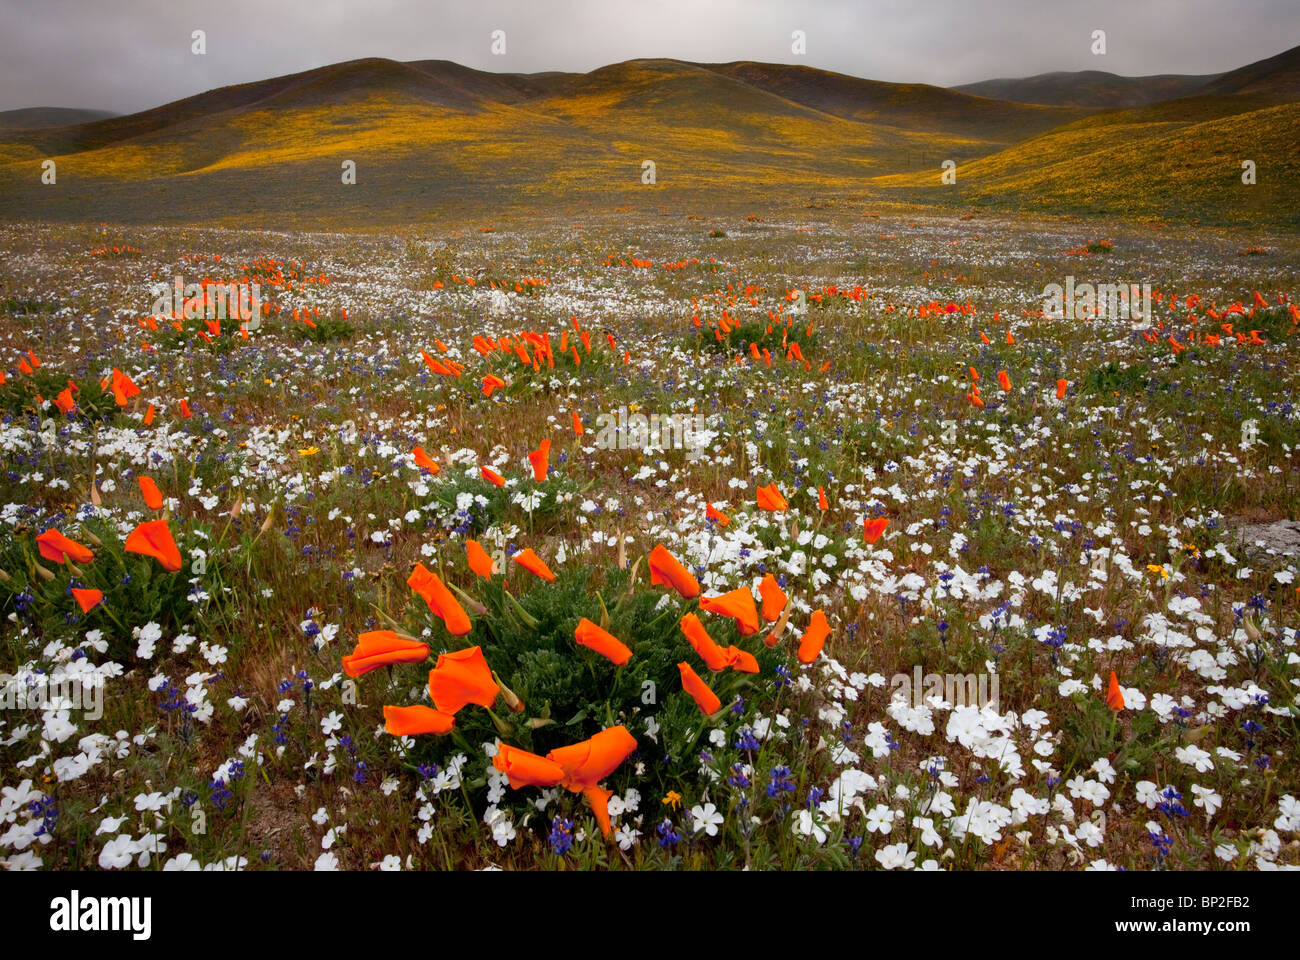 Evening snow linanthus dichotomus california poppies and other evening snow linanthus dichotomus california poppies and other spring flowers at gorman in the tehatchapi mountains california mightylinksfo